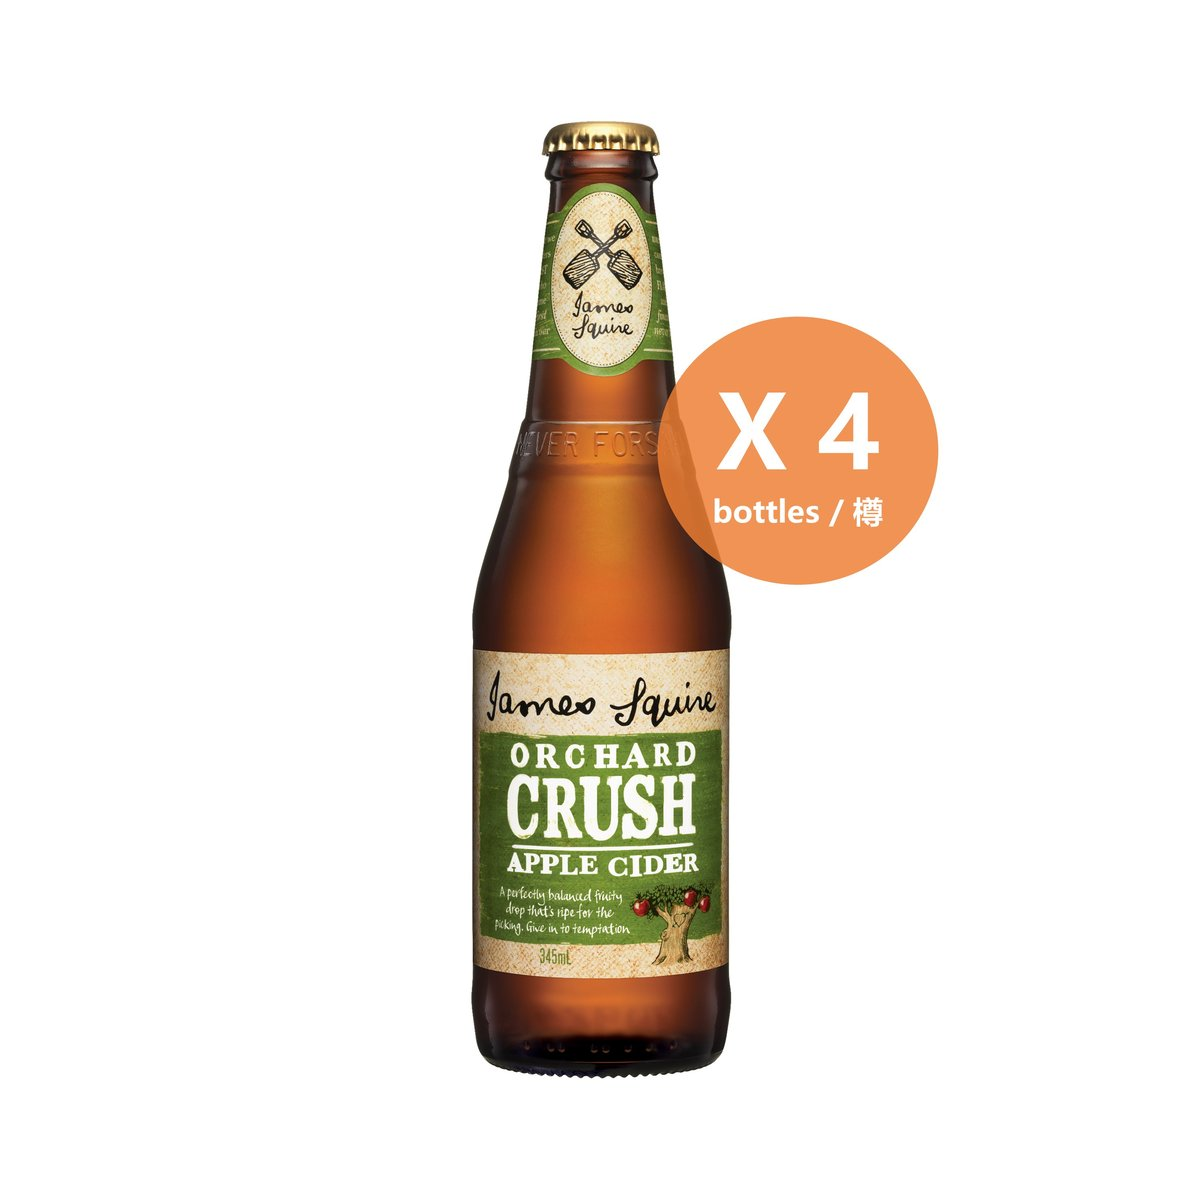 Orchard Crush Apple Cider - 345ml x 4 Bottles